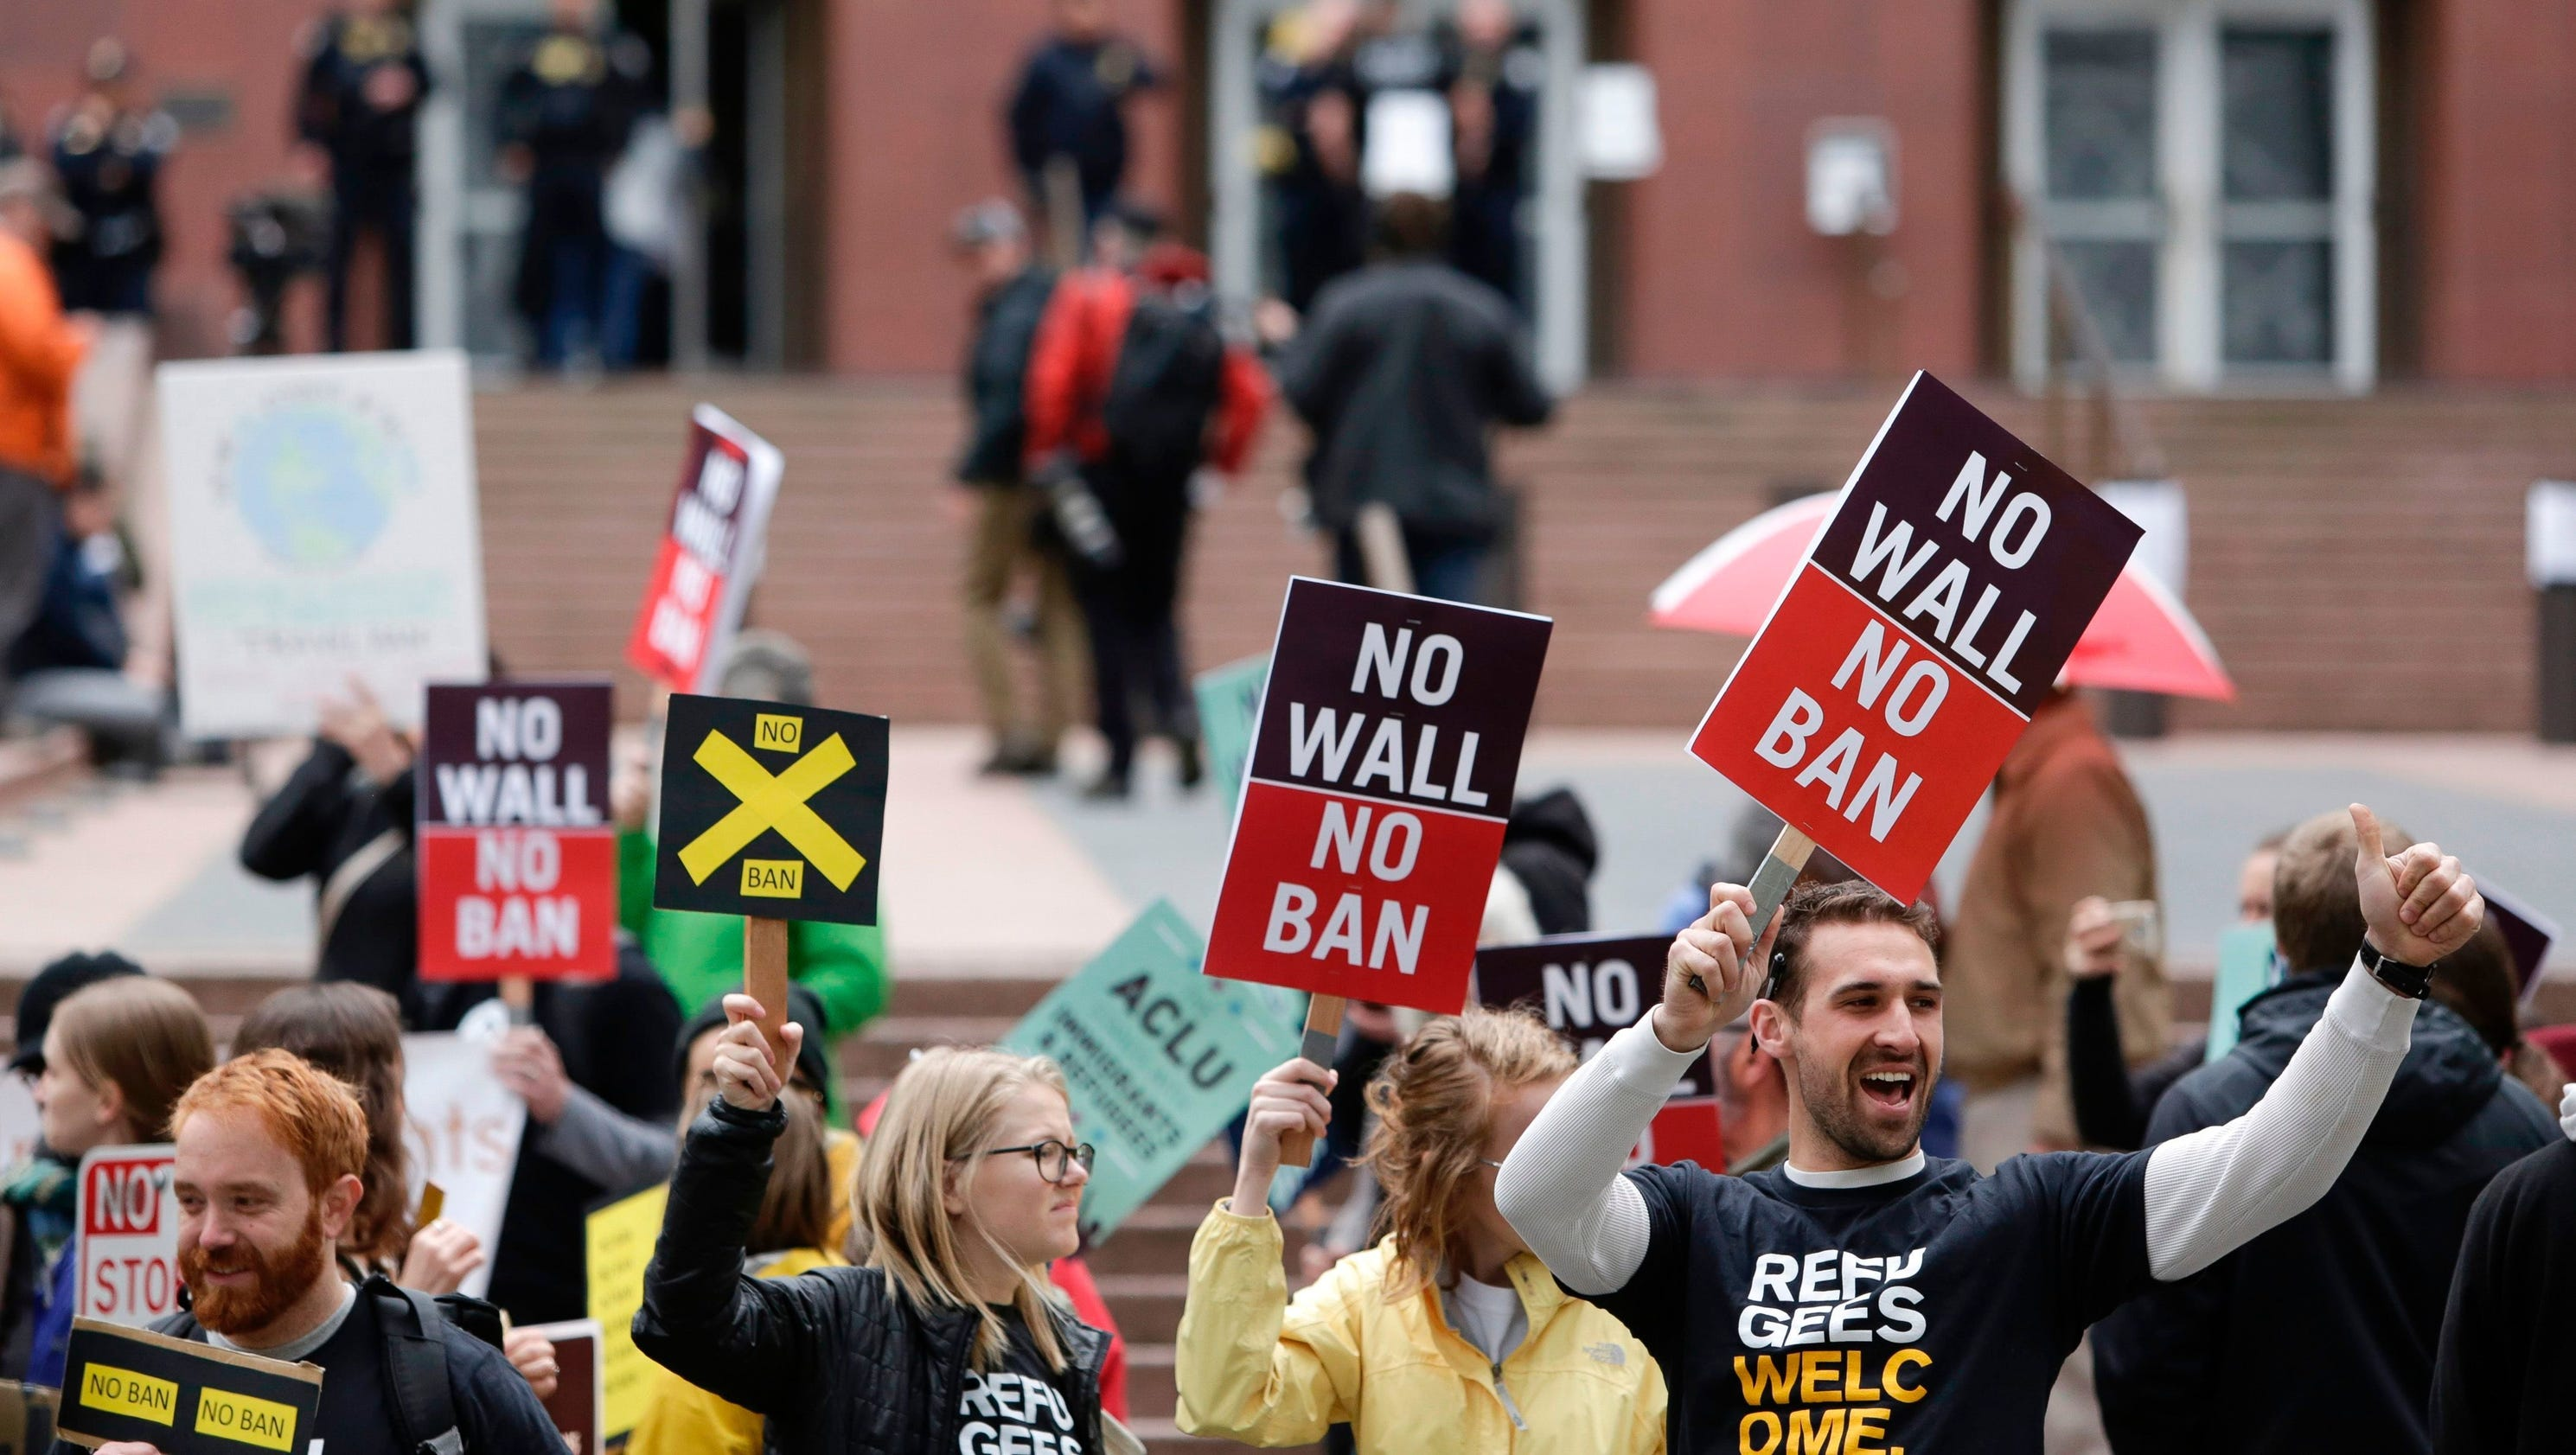 Travel ban revisions may add countries, alter court challenge